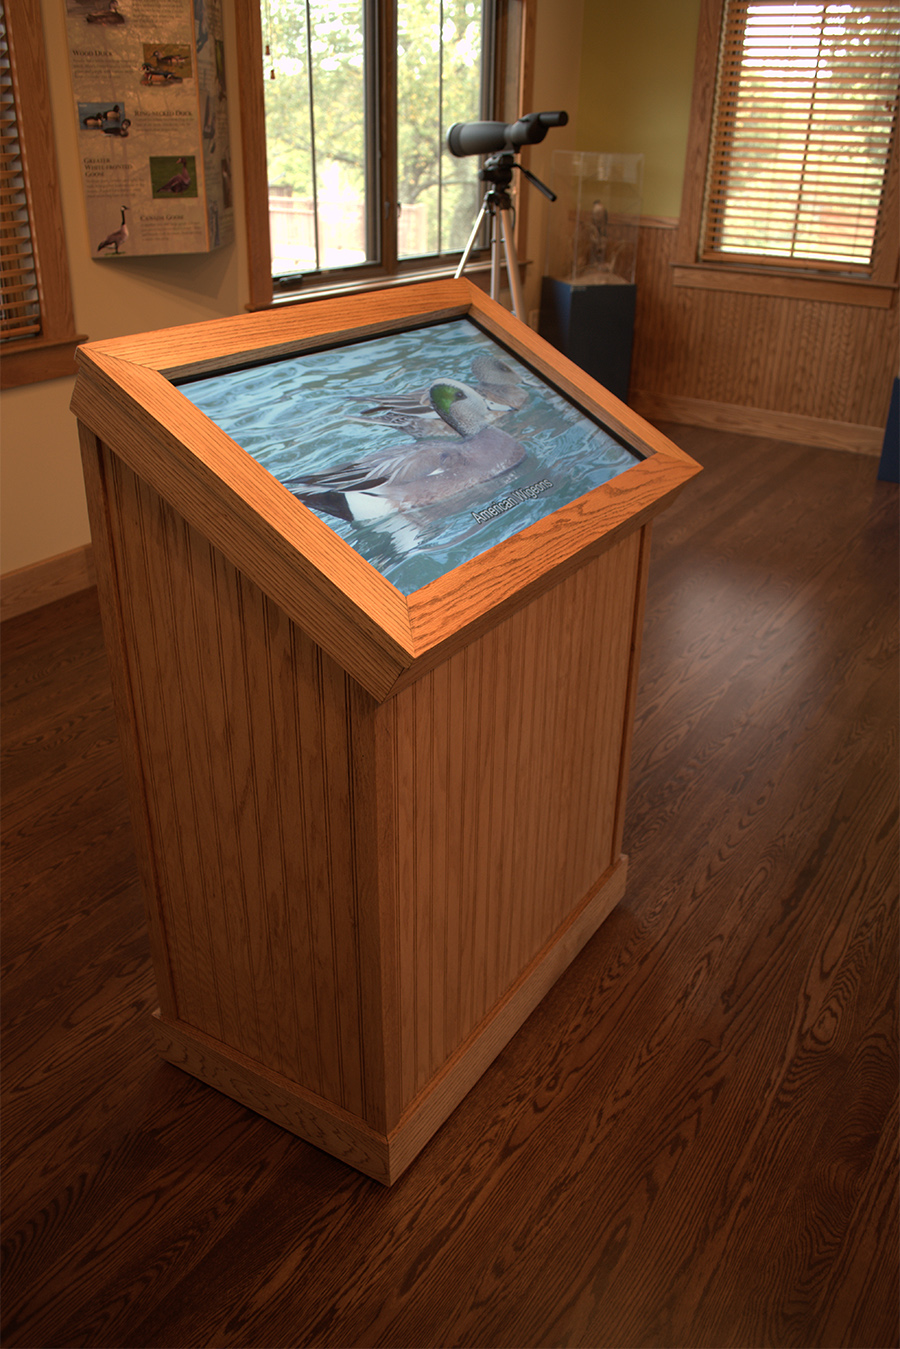 We programmed a custom touchscreen exhibit that teaches topics important to the refuge's purpose through video, photo, and audio narration.